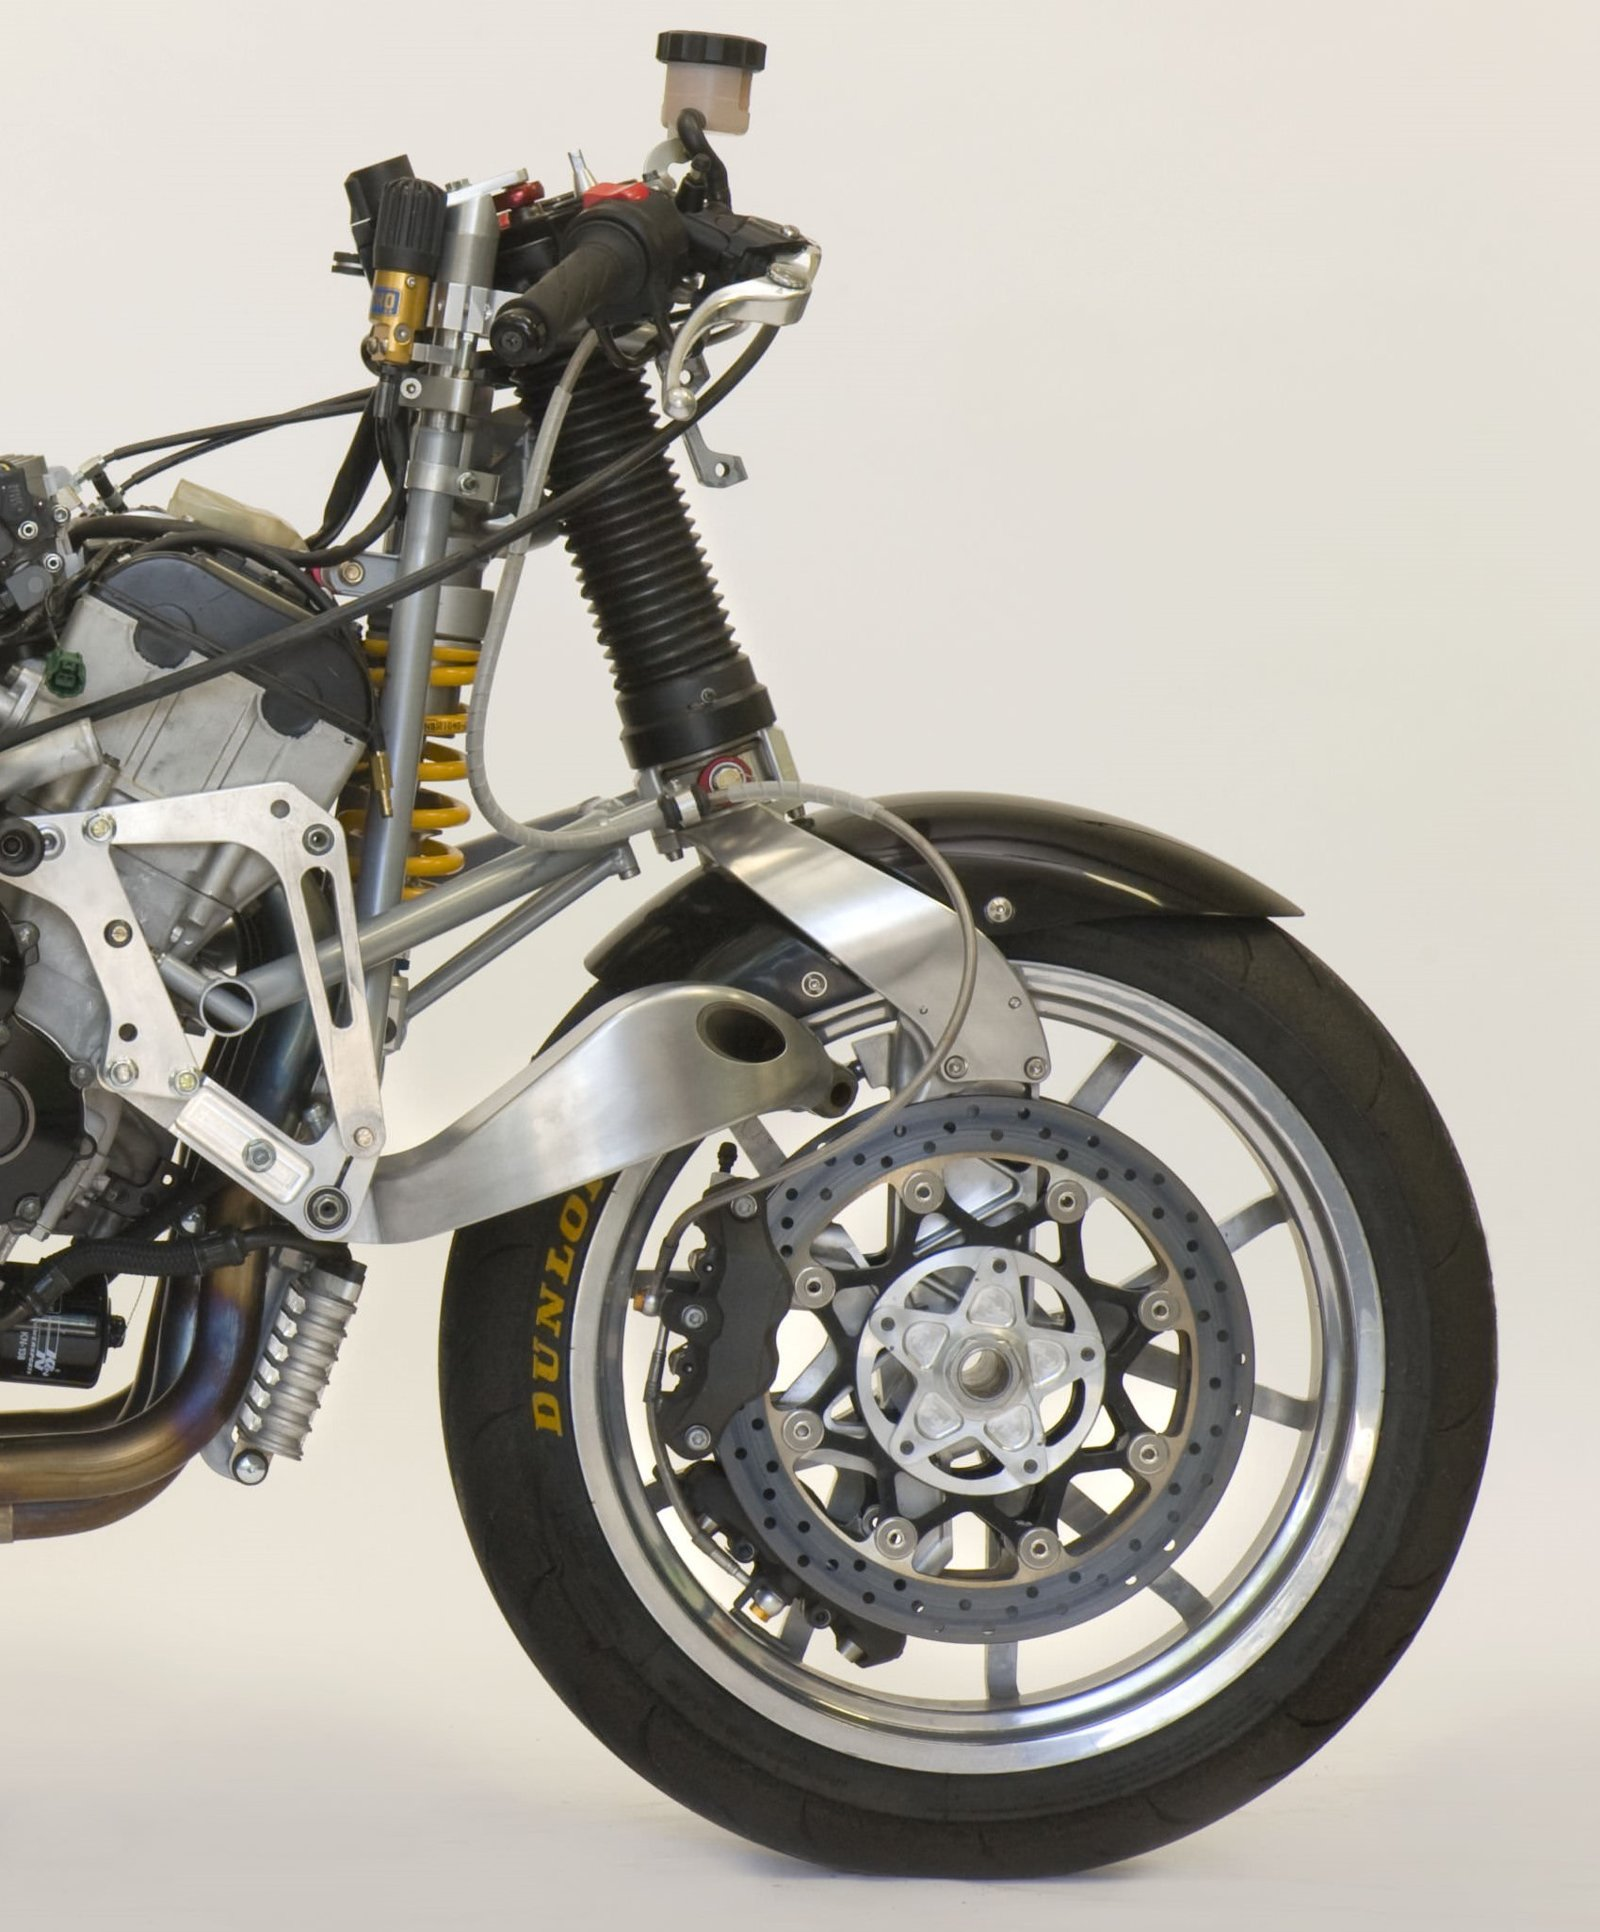 Front suspension system of motorcycle - Term paper Example